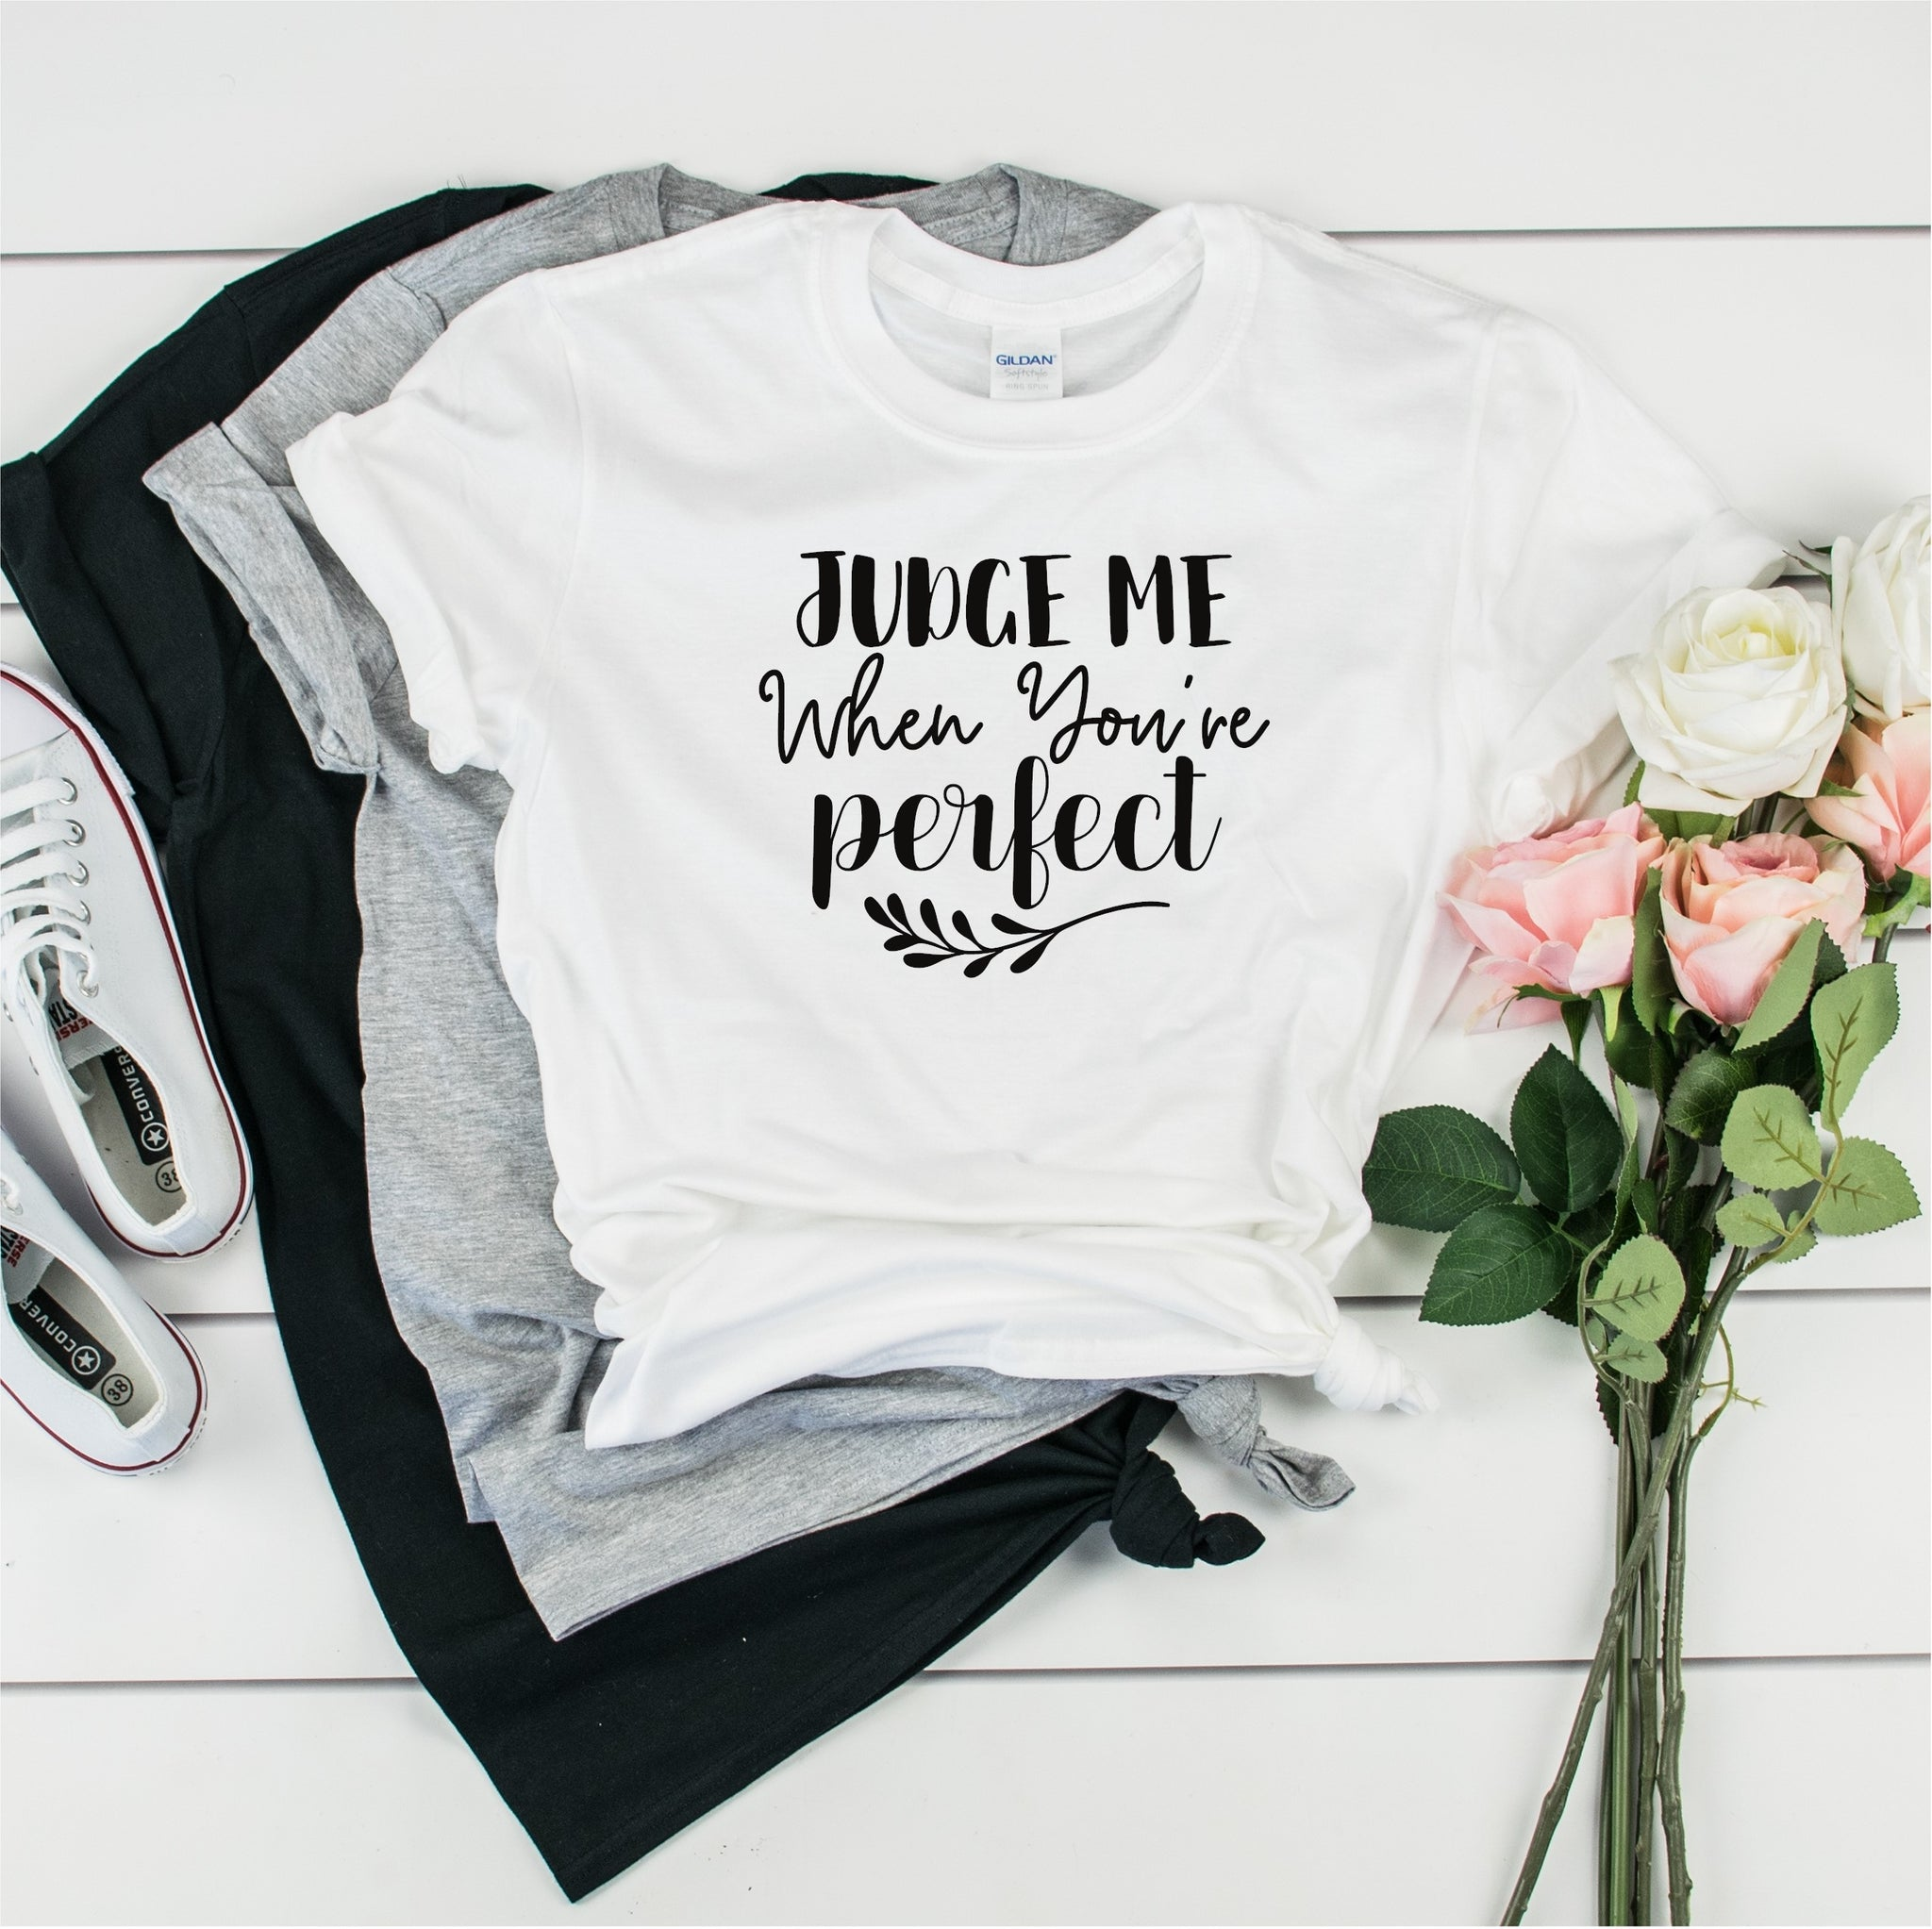 Judge Me When You're Perfect-   Ultra Cotton Short Sleeve T-Shirt- FHD77